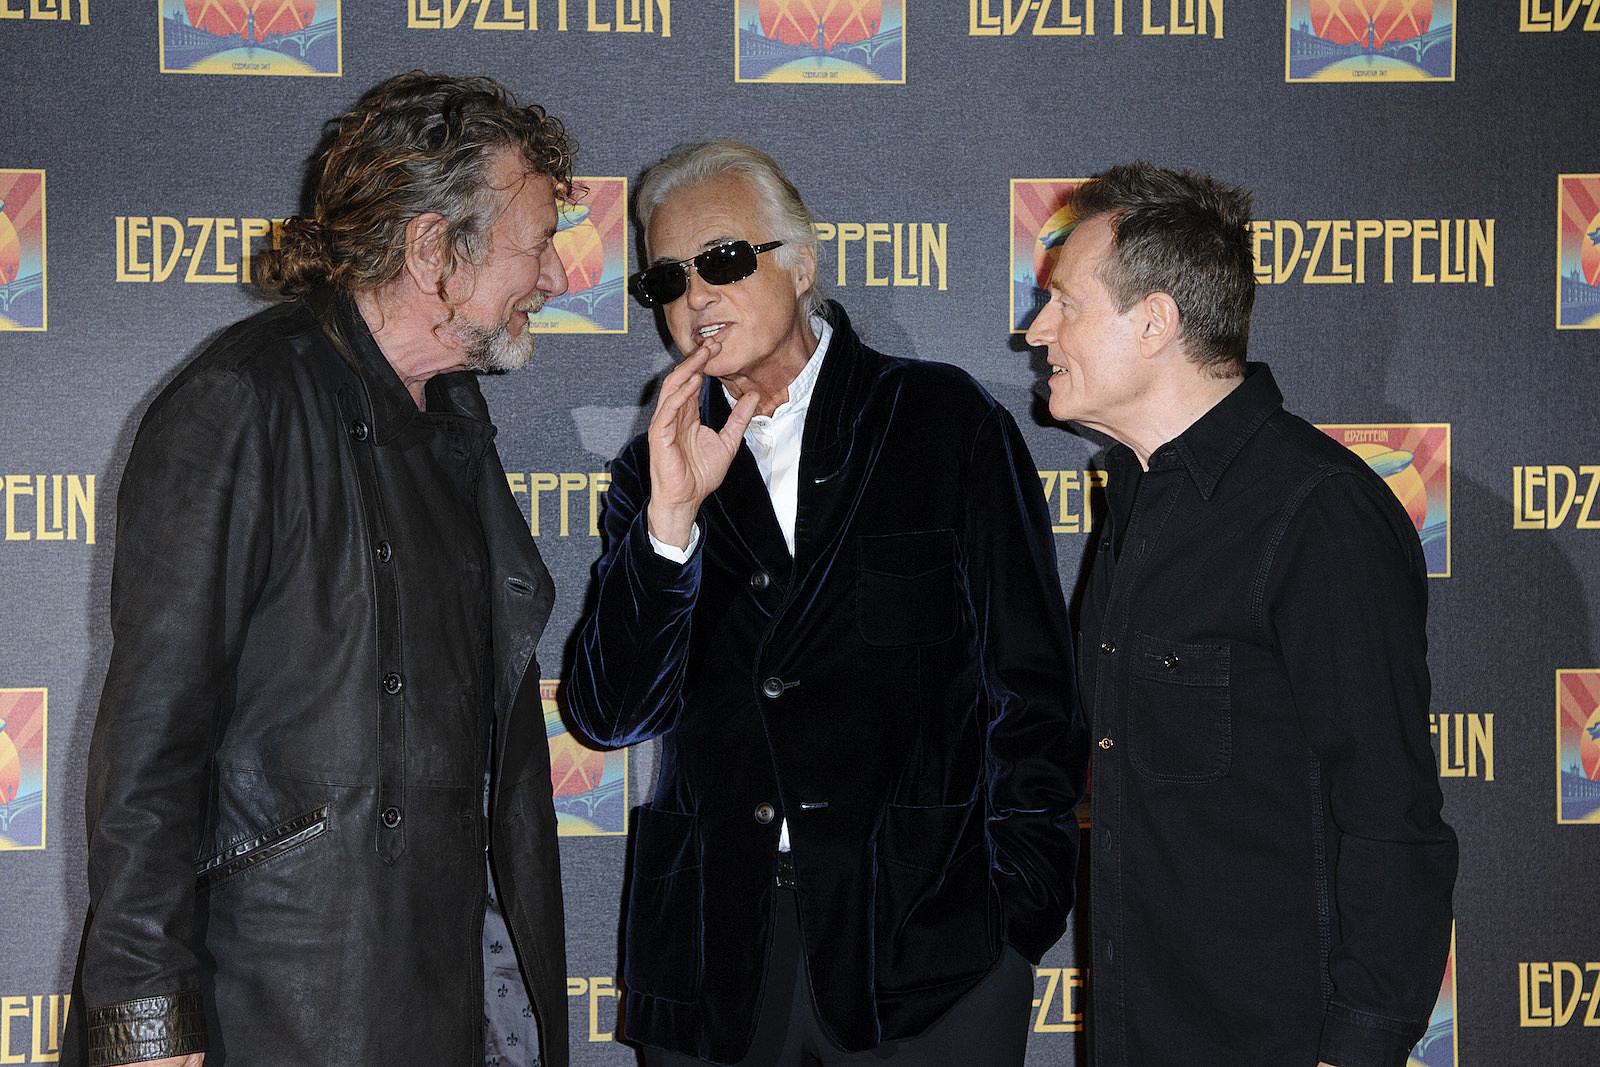 Which Songs Have Made Led Zeppelin the Most Money?